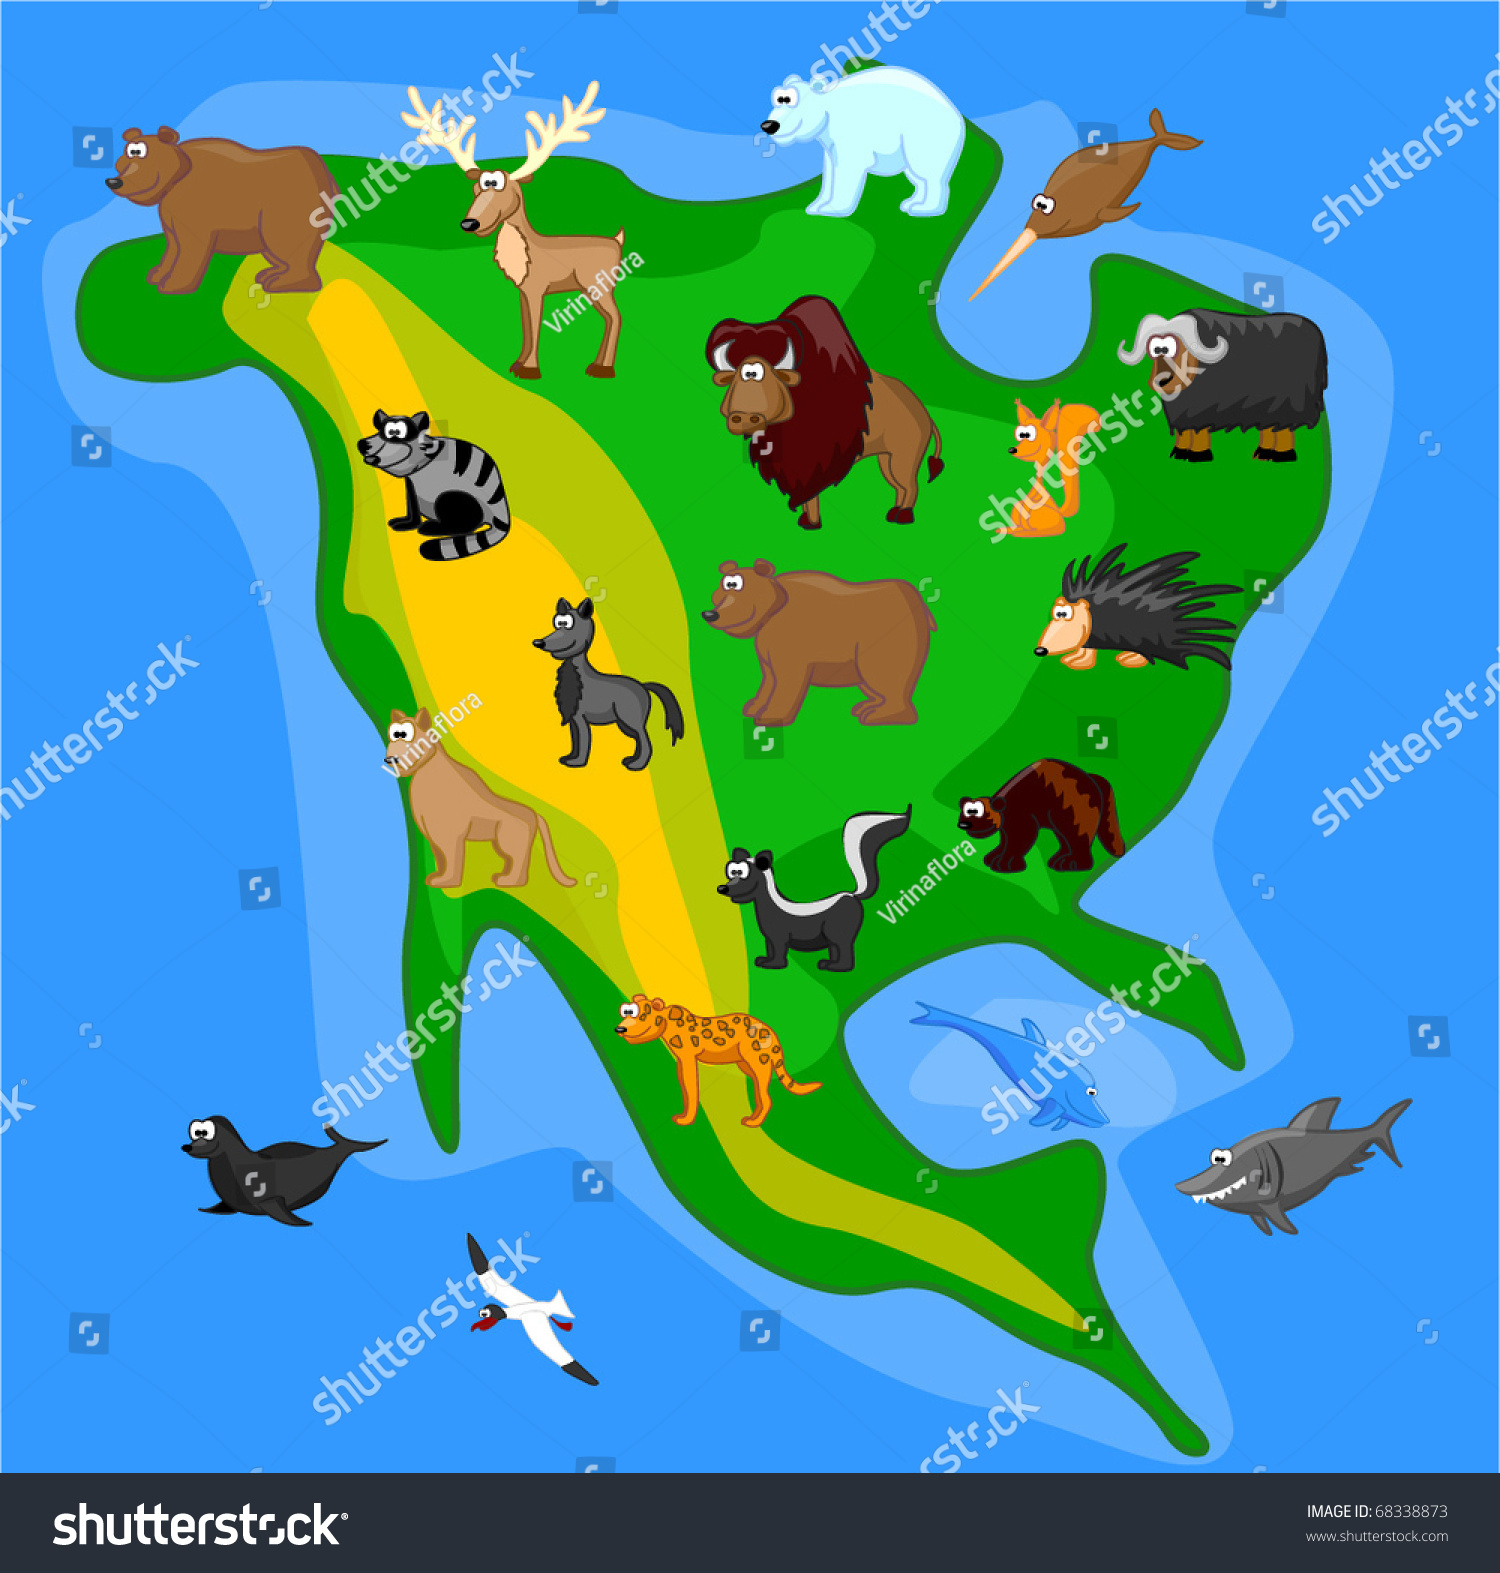 where do polar bears live map with Stock Vector Animals Of North America Including Grizzly Bears Caribou Polar Bears Raccoons Bison Porcupine on 23 Fact Tuesday Polar Bear as well Animal Facts Sea Otter furthermore 1426205112 further Fauna additionally Omnivores.